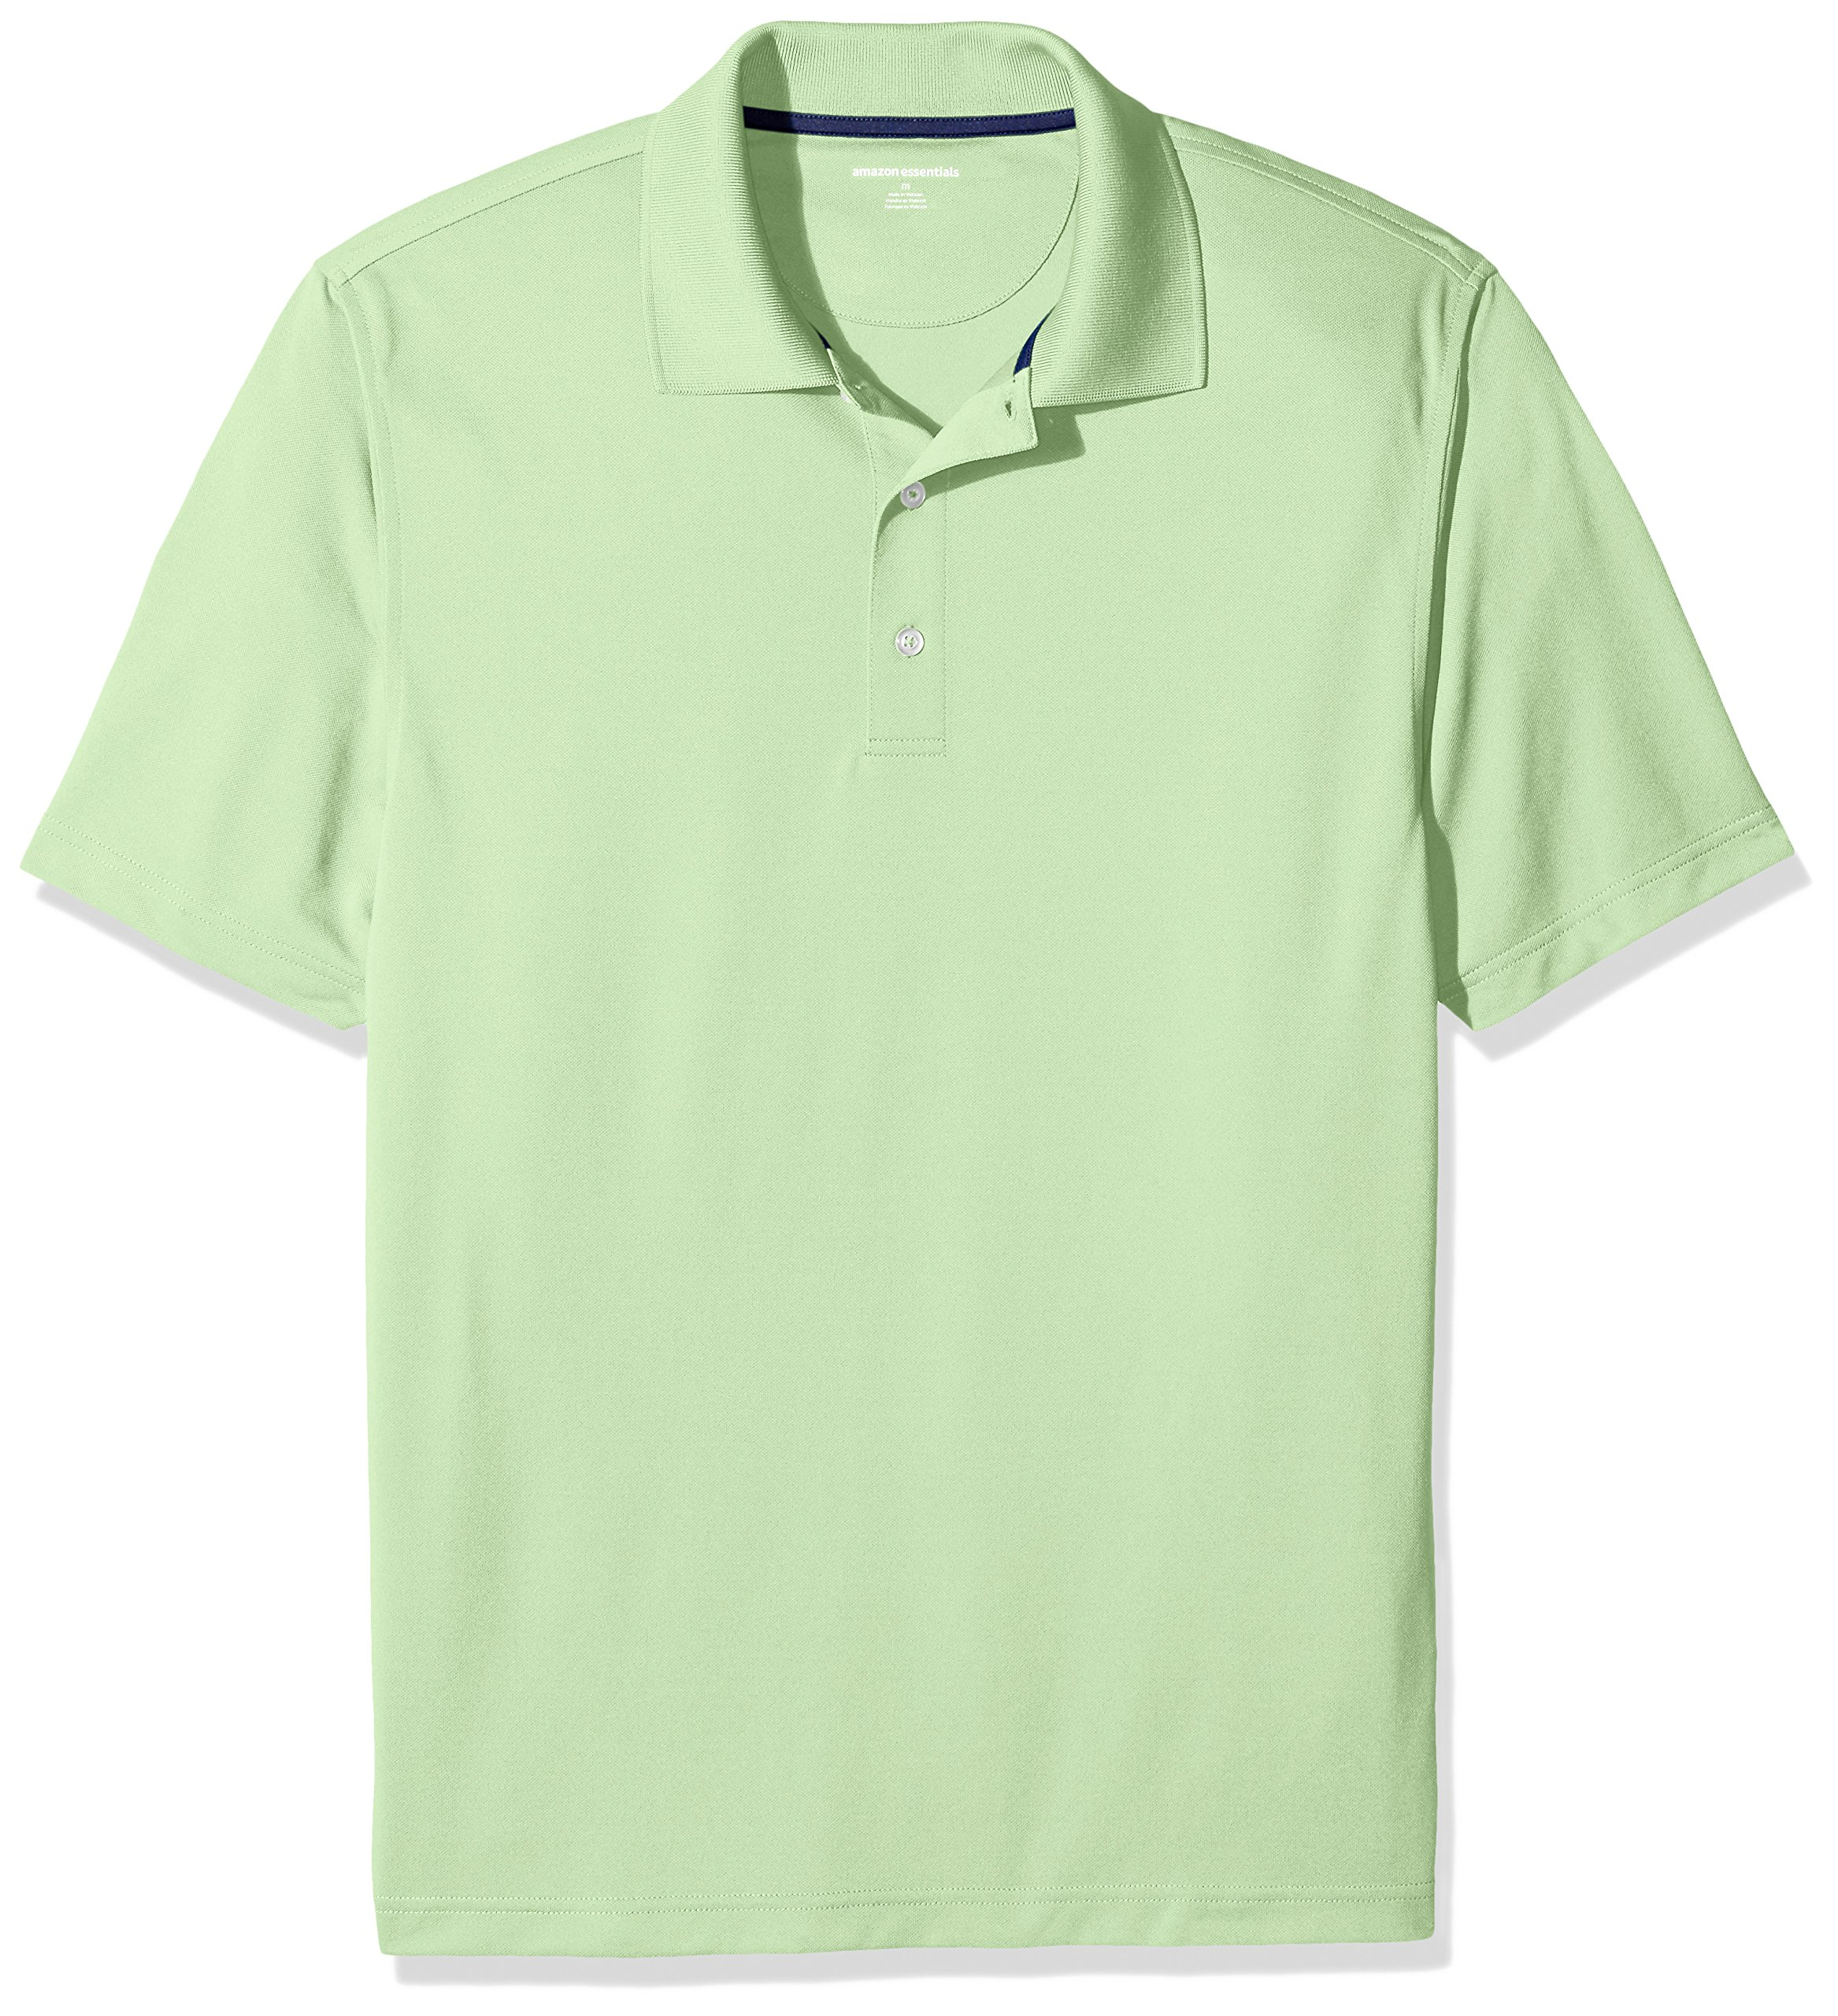 Amazon Essentials Men's Regular-Fit Quick-Dry Golf Polo Shirt, Lime Green, X-Small by Amazon Essentials